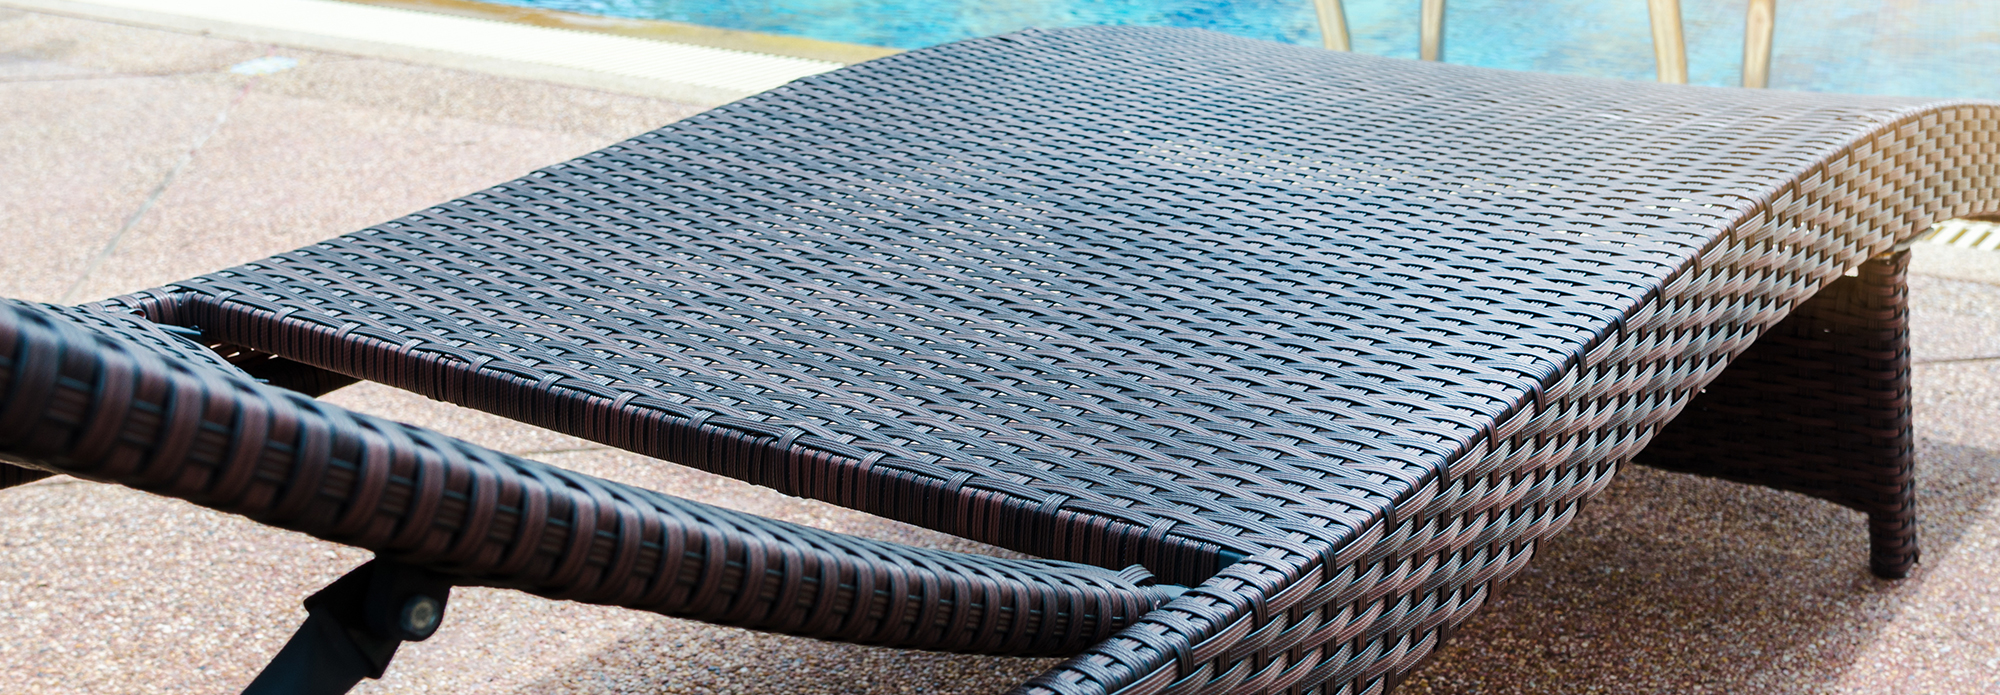 Outdoor Furniture Questions and Tips